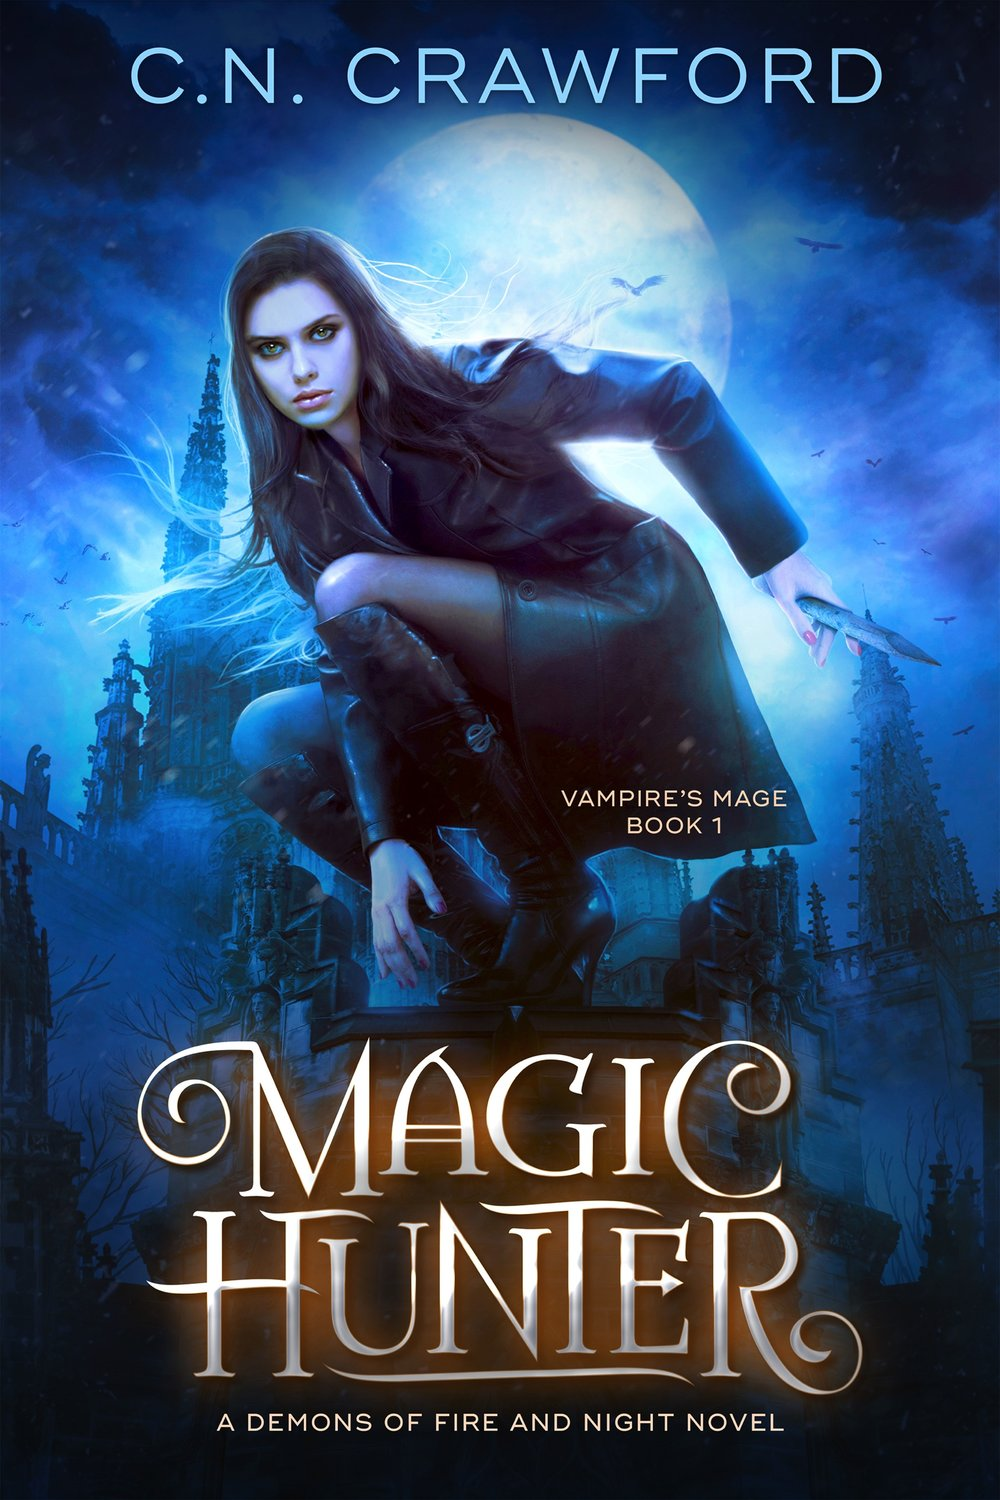 Book 1: Magic Hunter